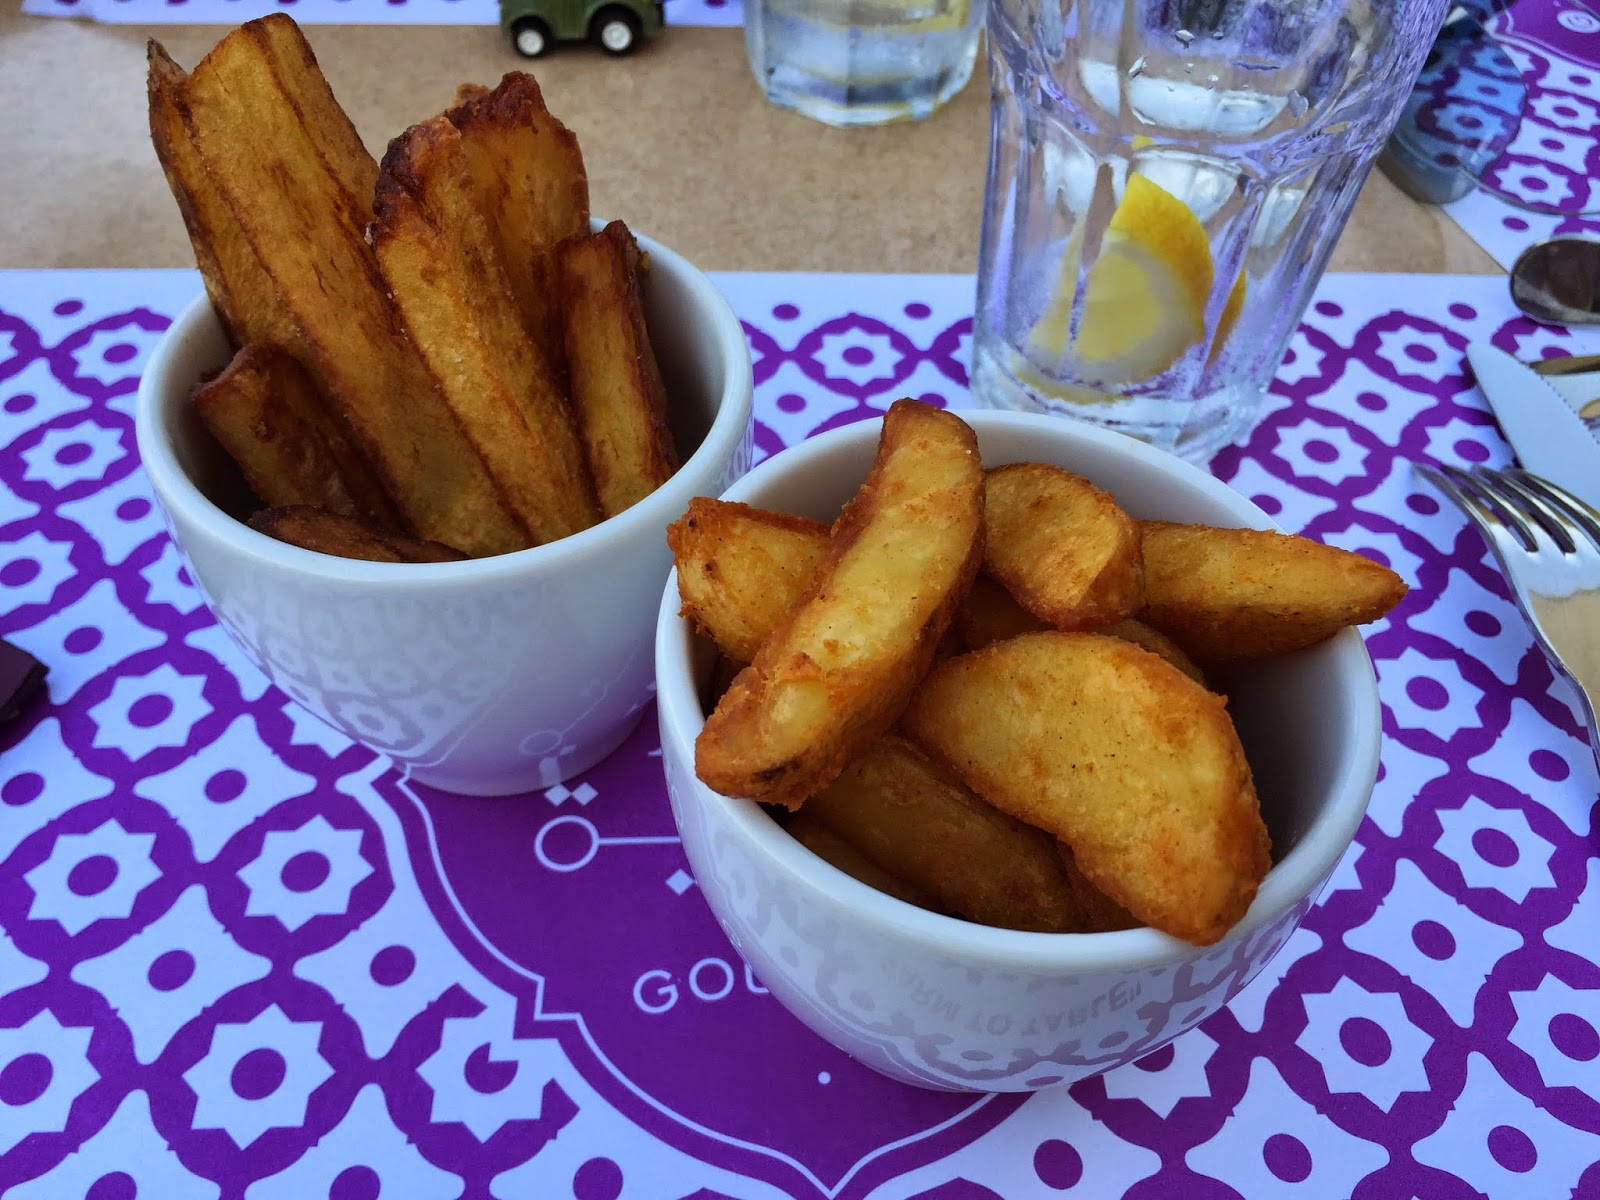 Omnia Gourmet: hand cut fries